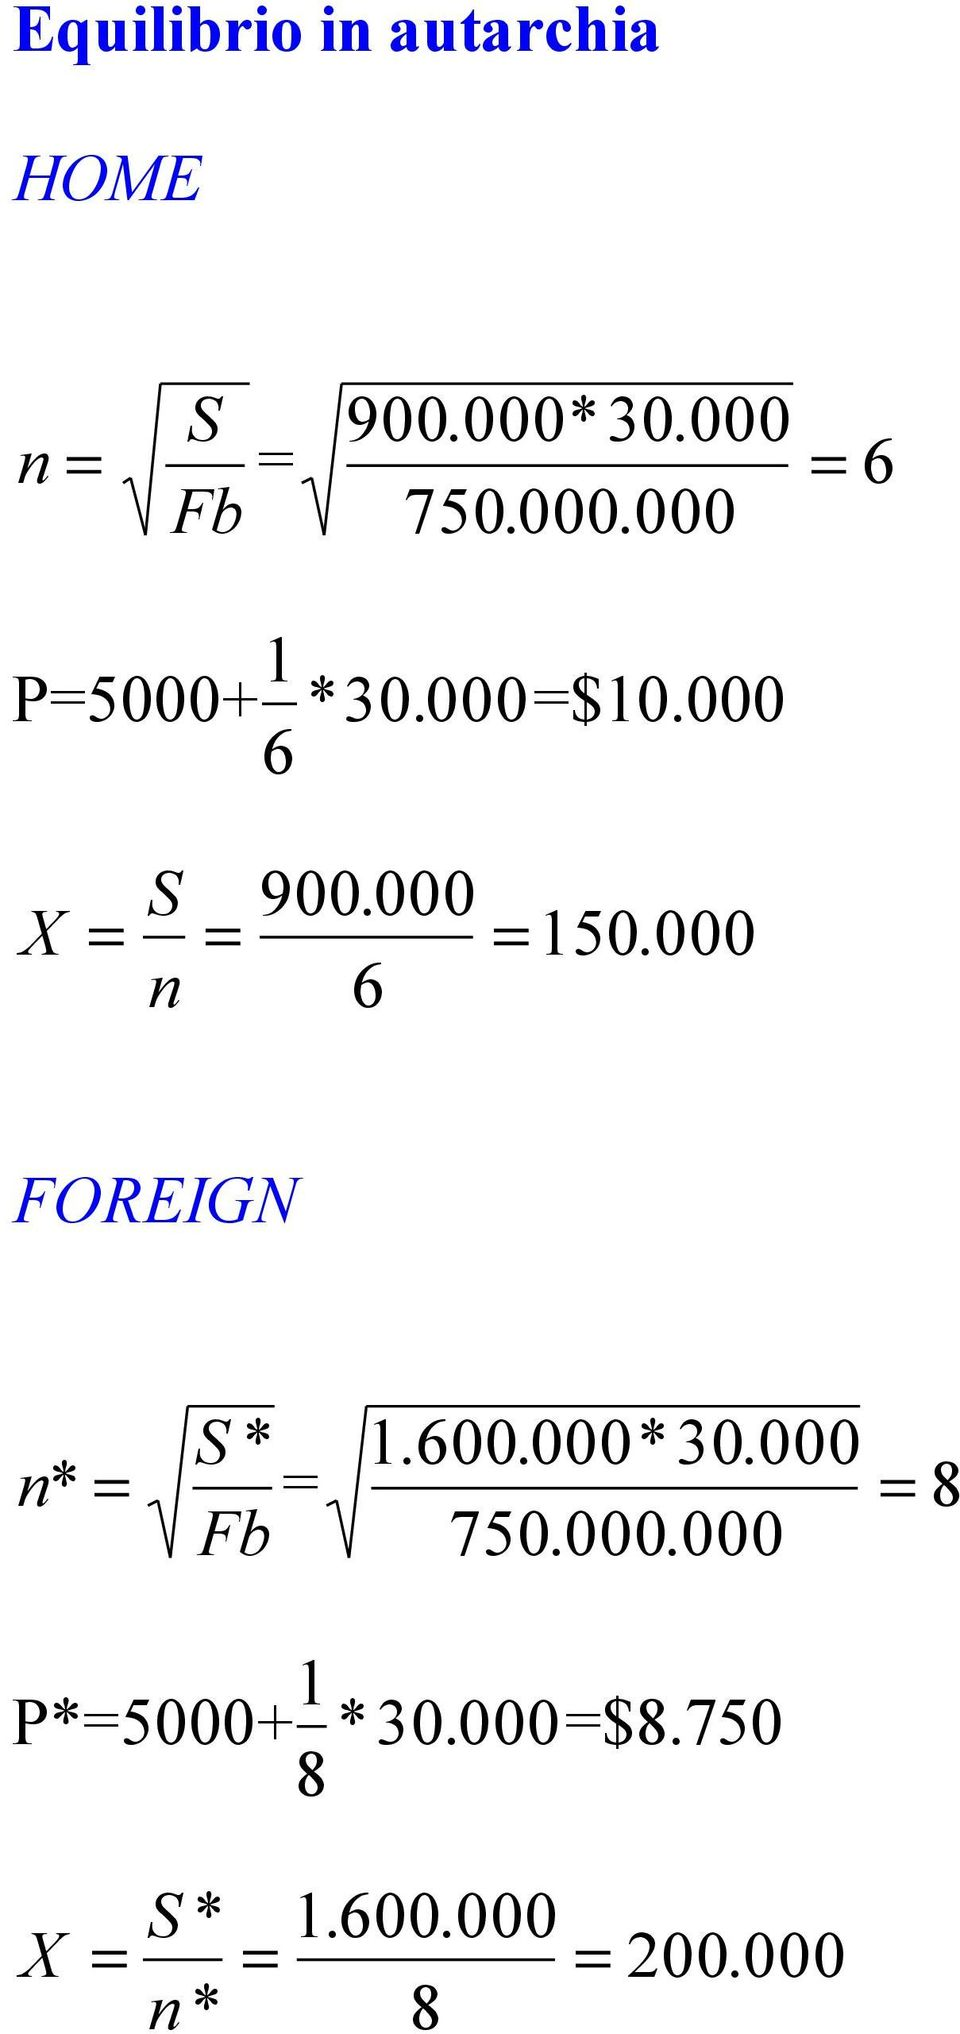 000 6 n 900.000 6 50.000 FOREIGN *.600.000*30.